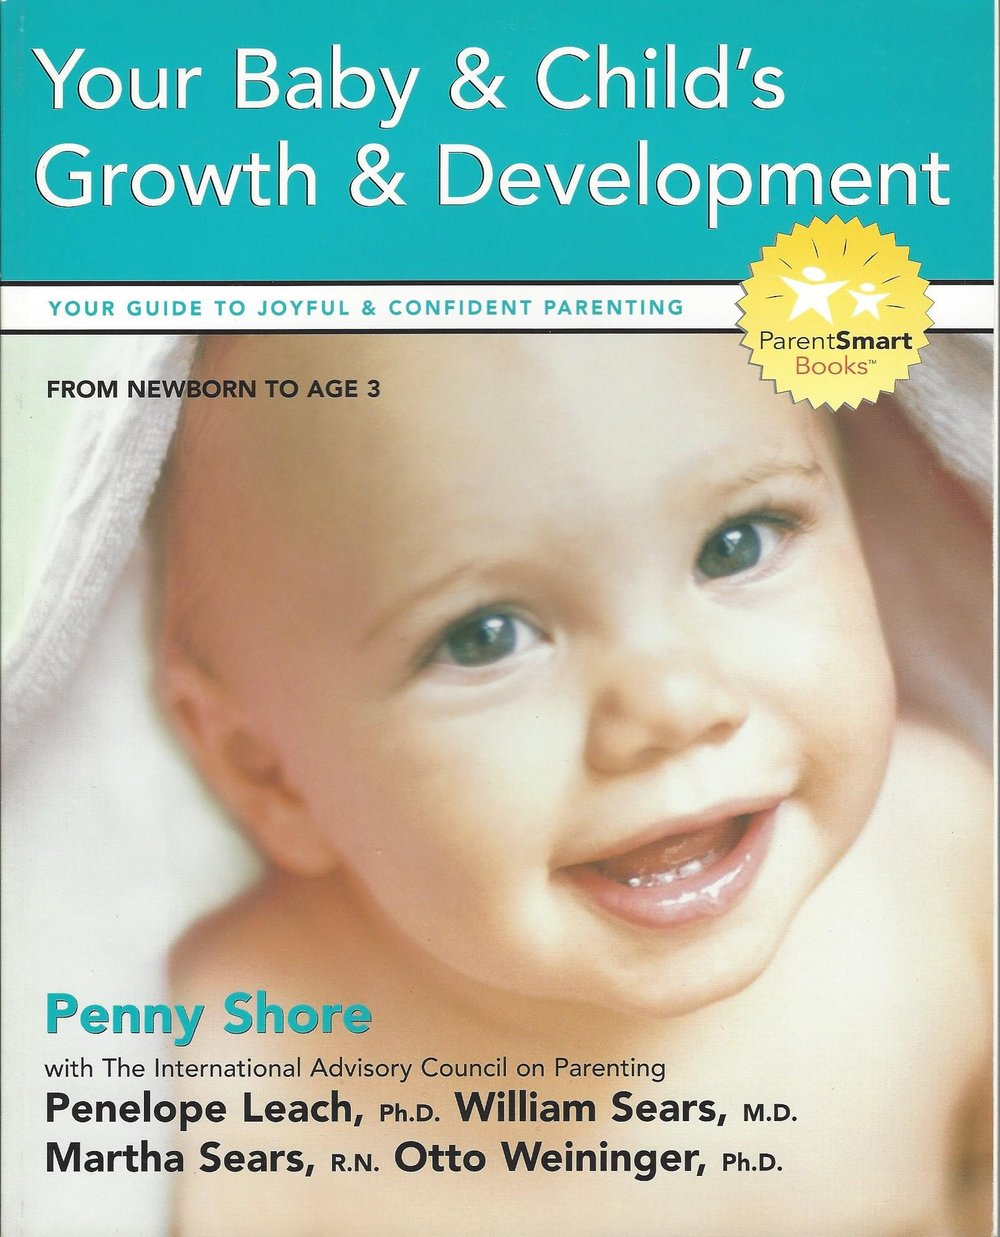 - Your Baby & Child's Growth & DevelopmentBy Penny Shore with William Sears, M.D.